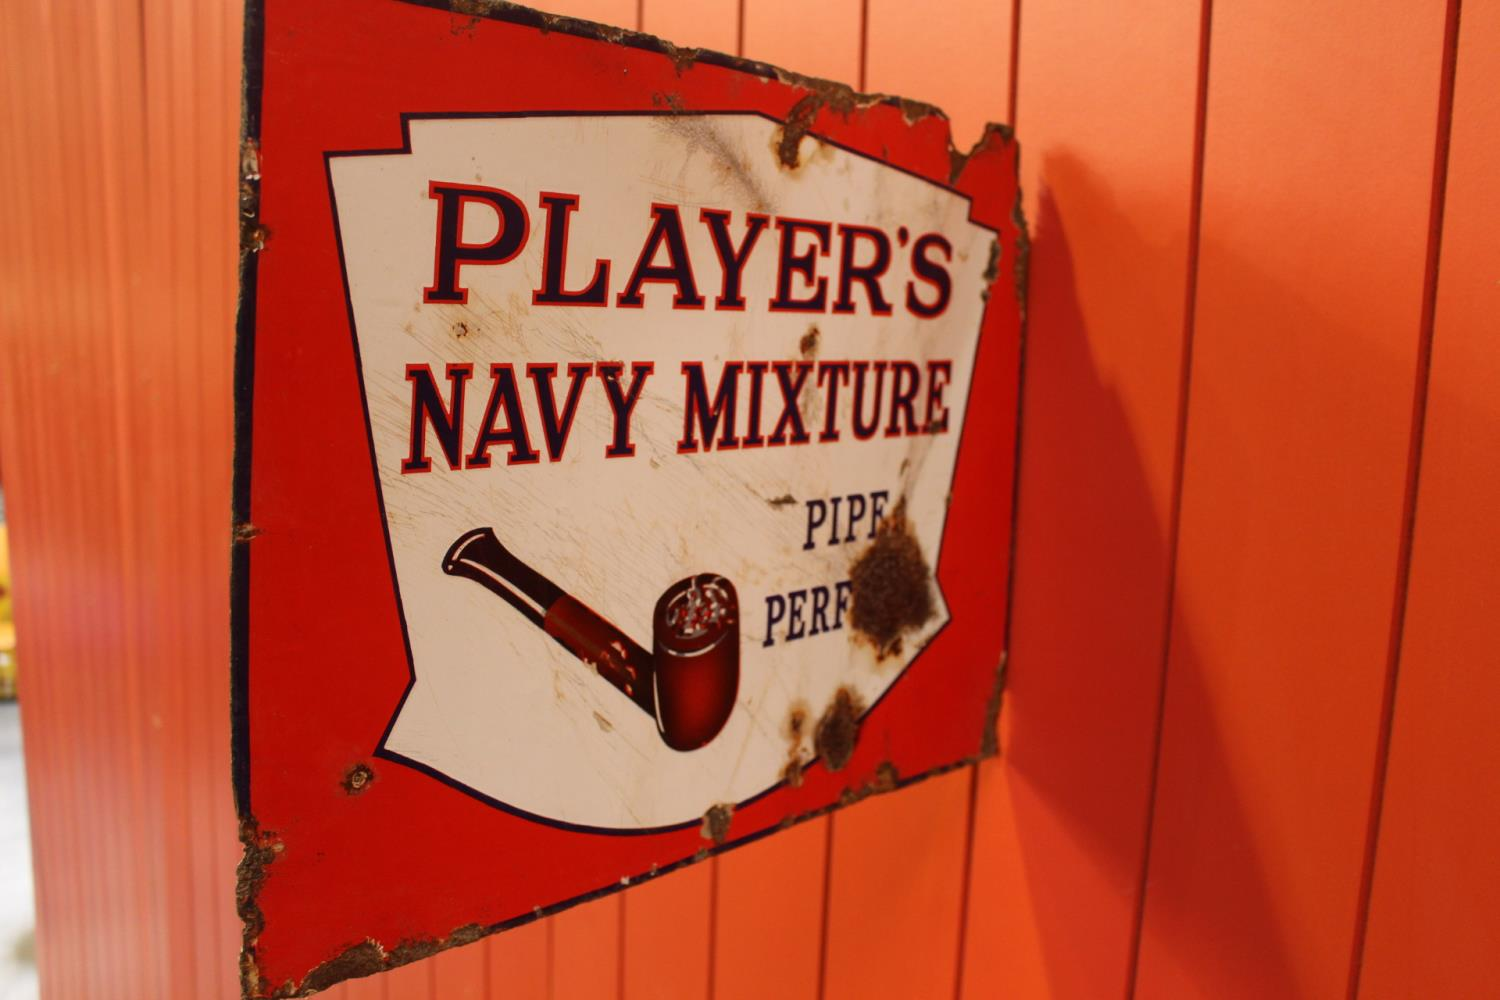 Extremely rare Player's Navy Mixture Pipe Perfect - Image 3 of 3